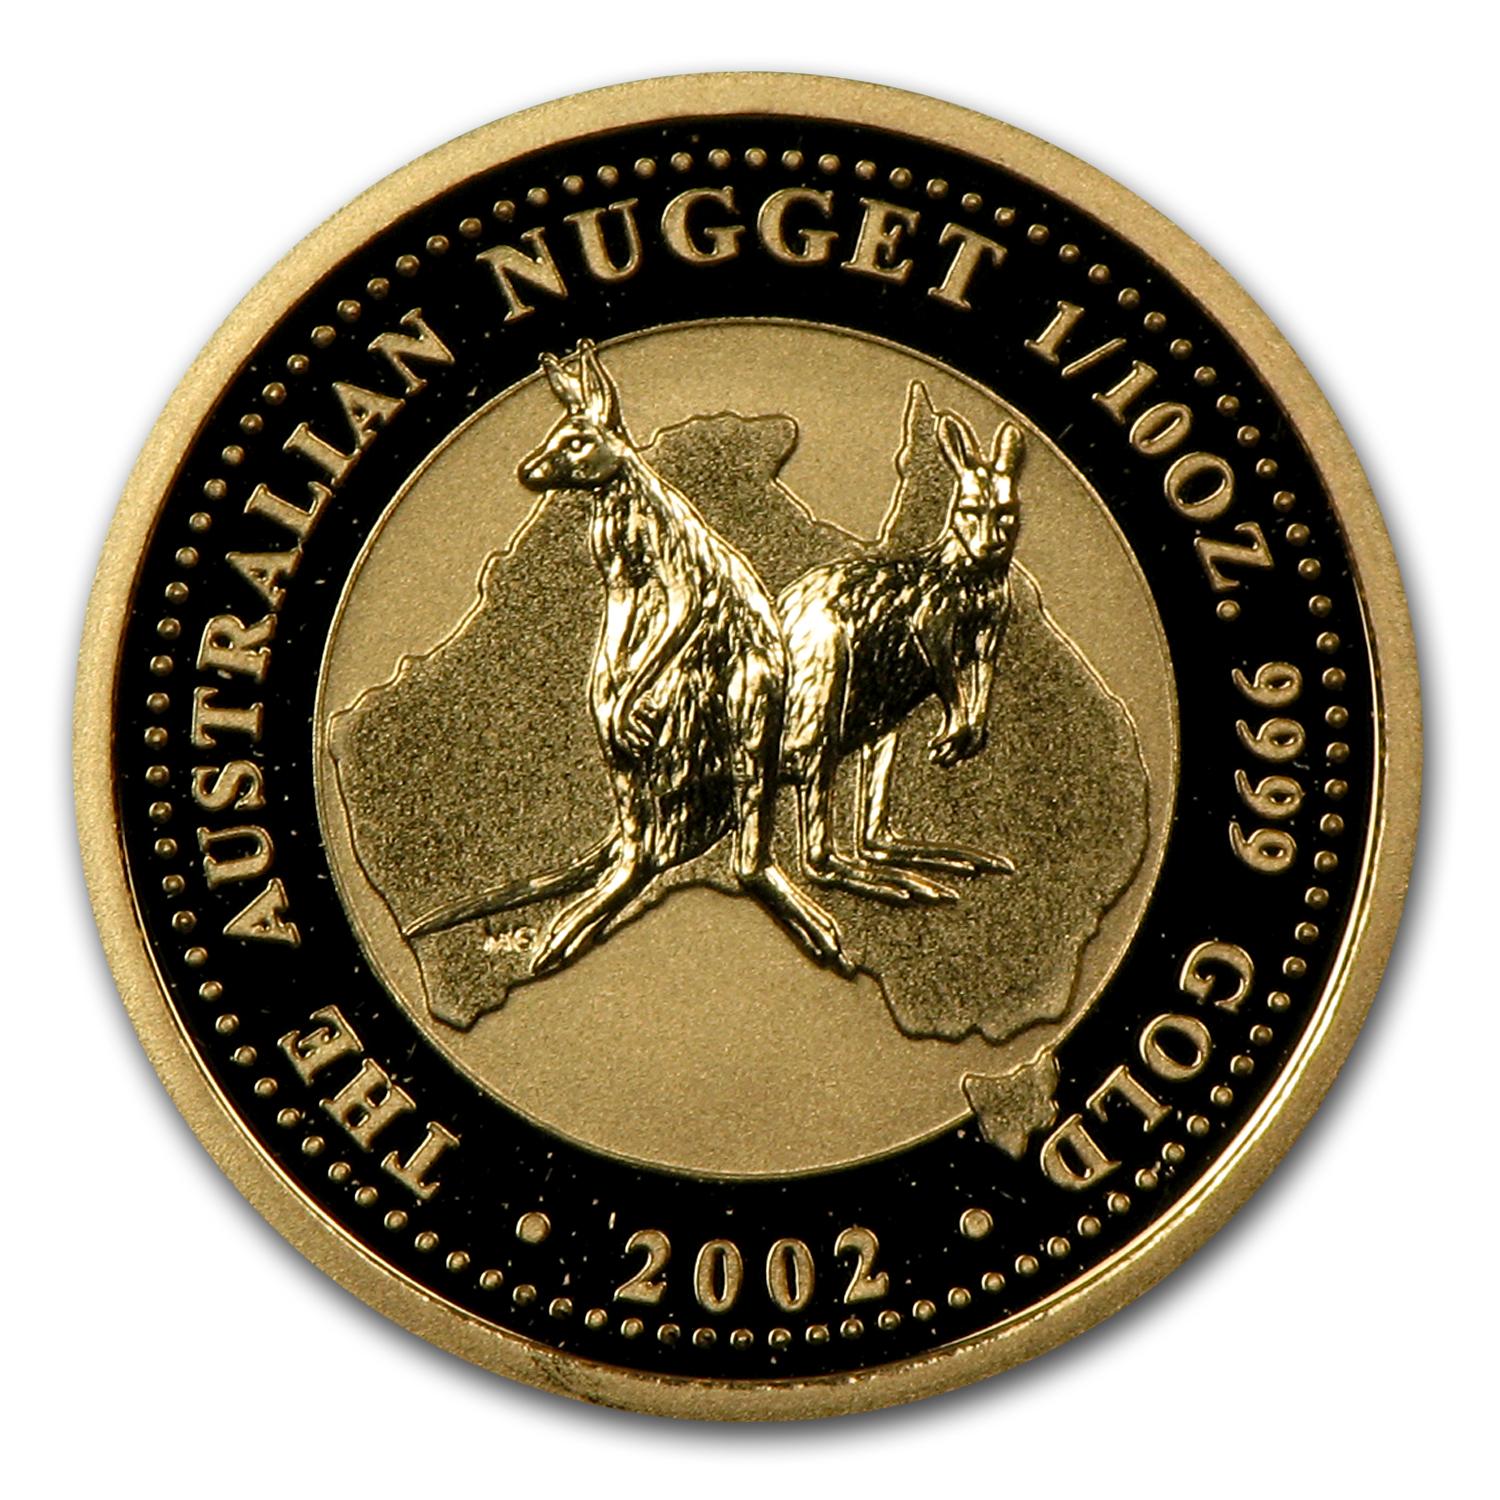 2002 1/10 oz Australian Gold Nugget